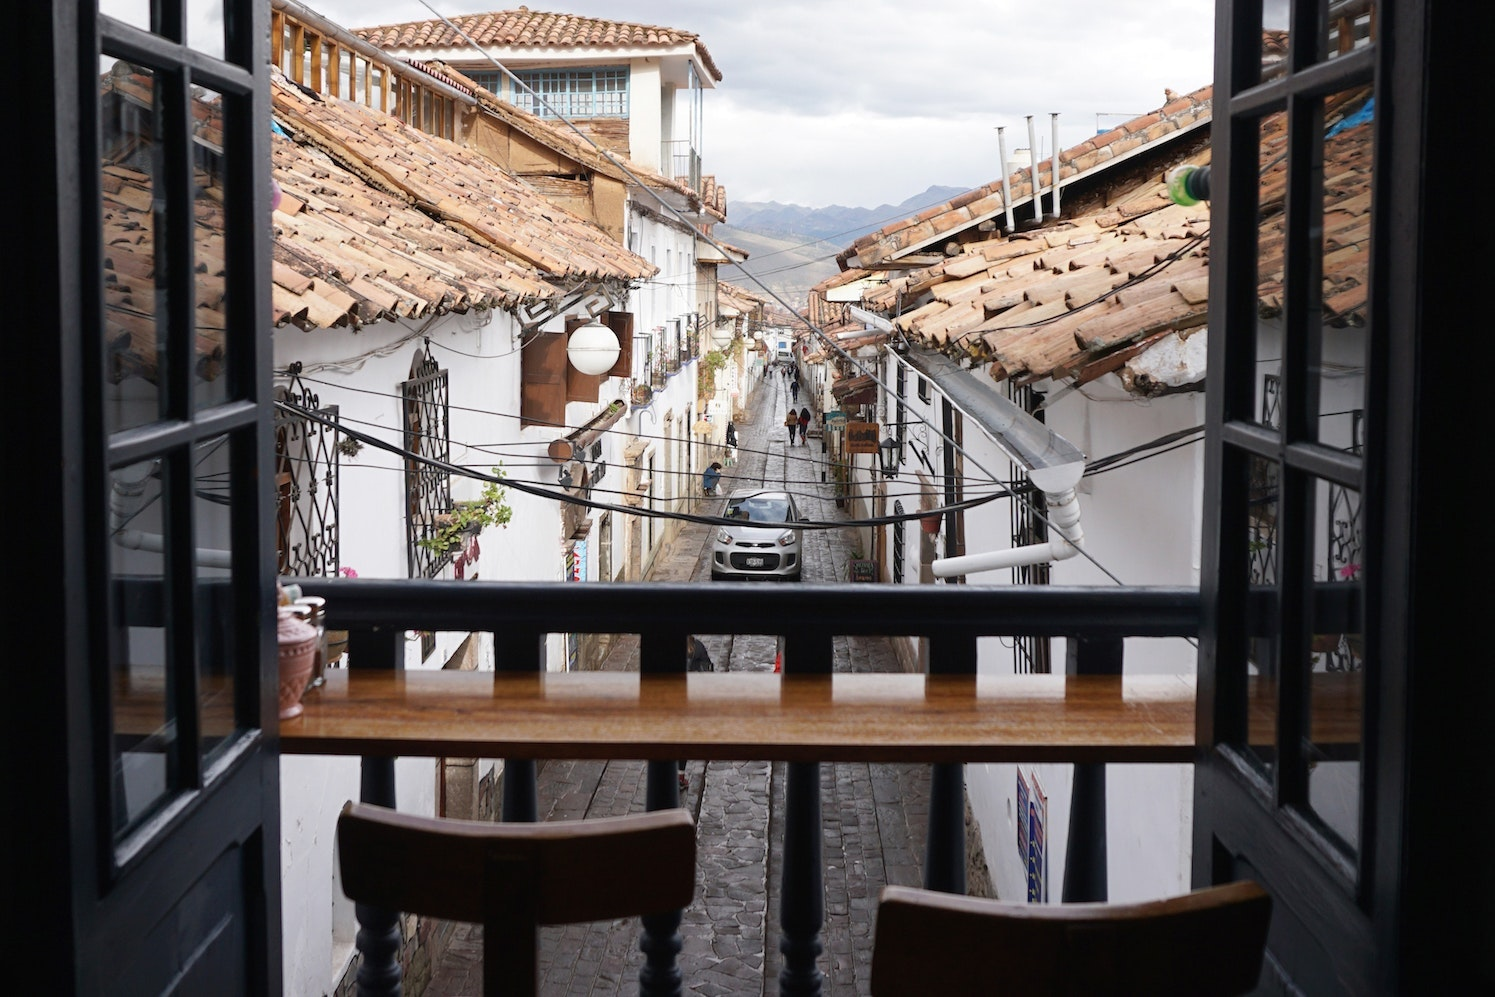 The view from L'Atelier, a hip coffee shop in the San Blas neighborhood